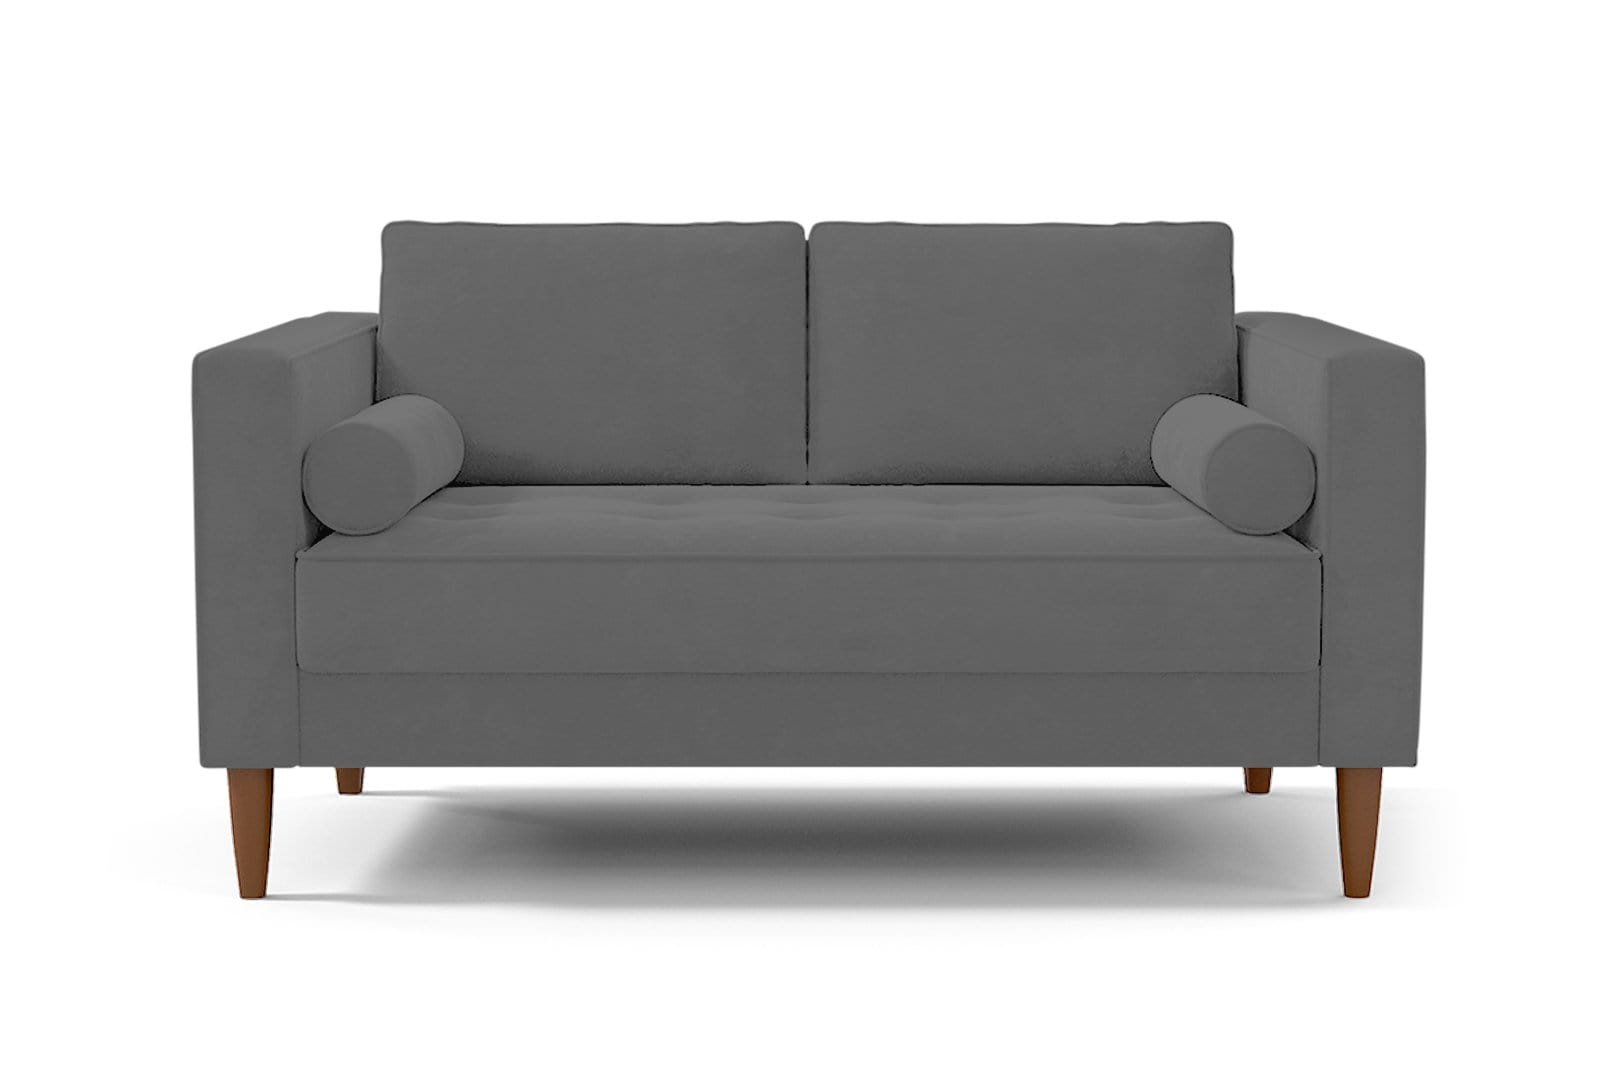 Delilah Loveseat - Grey - Small Space Modern Couch Made in the USA - Sold by Apt2B